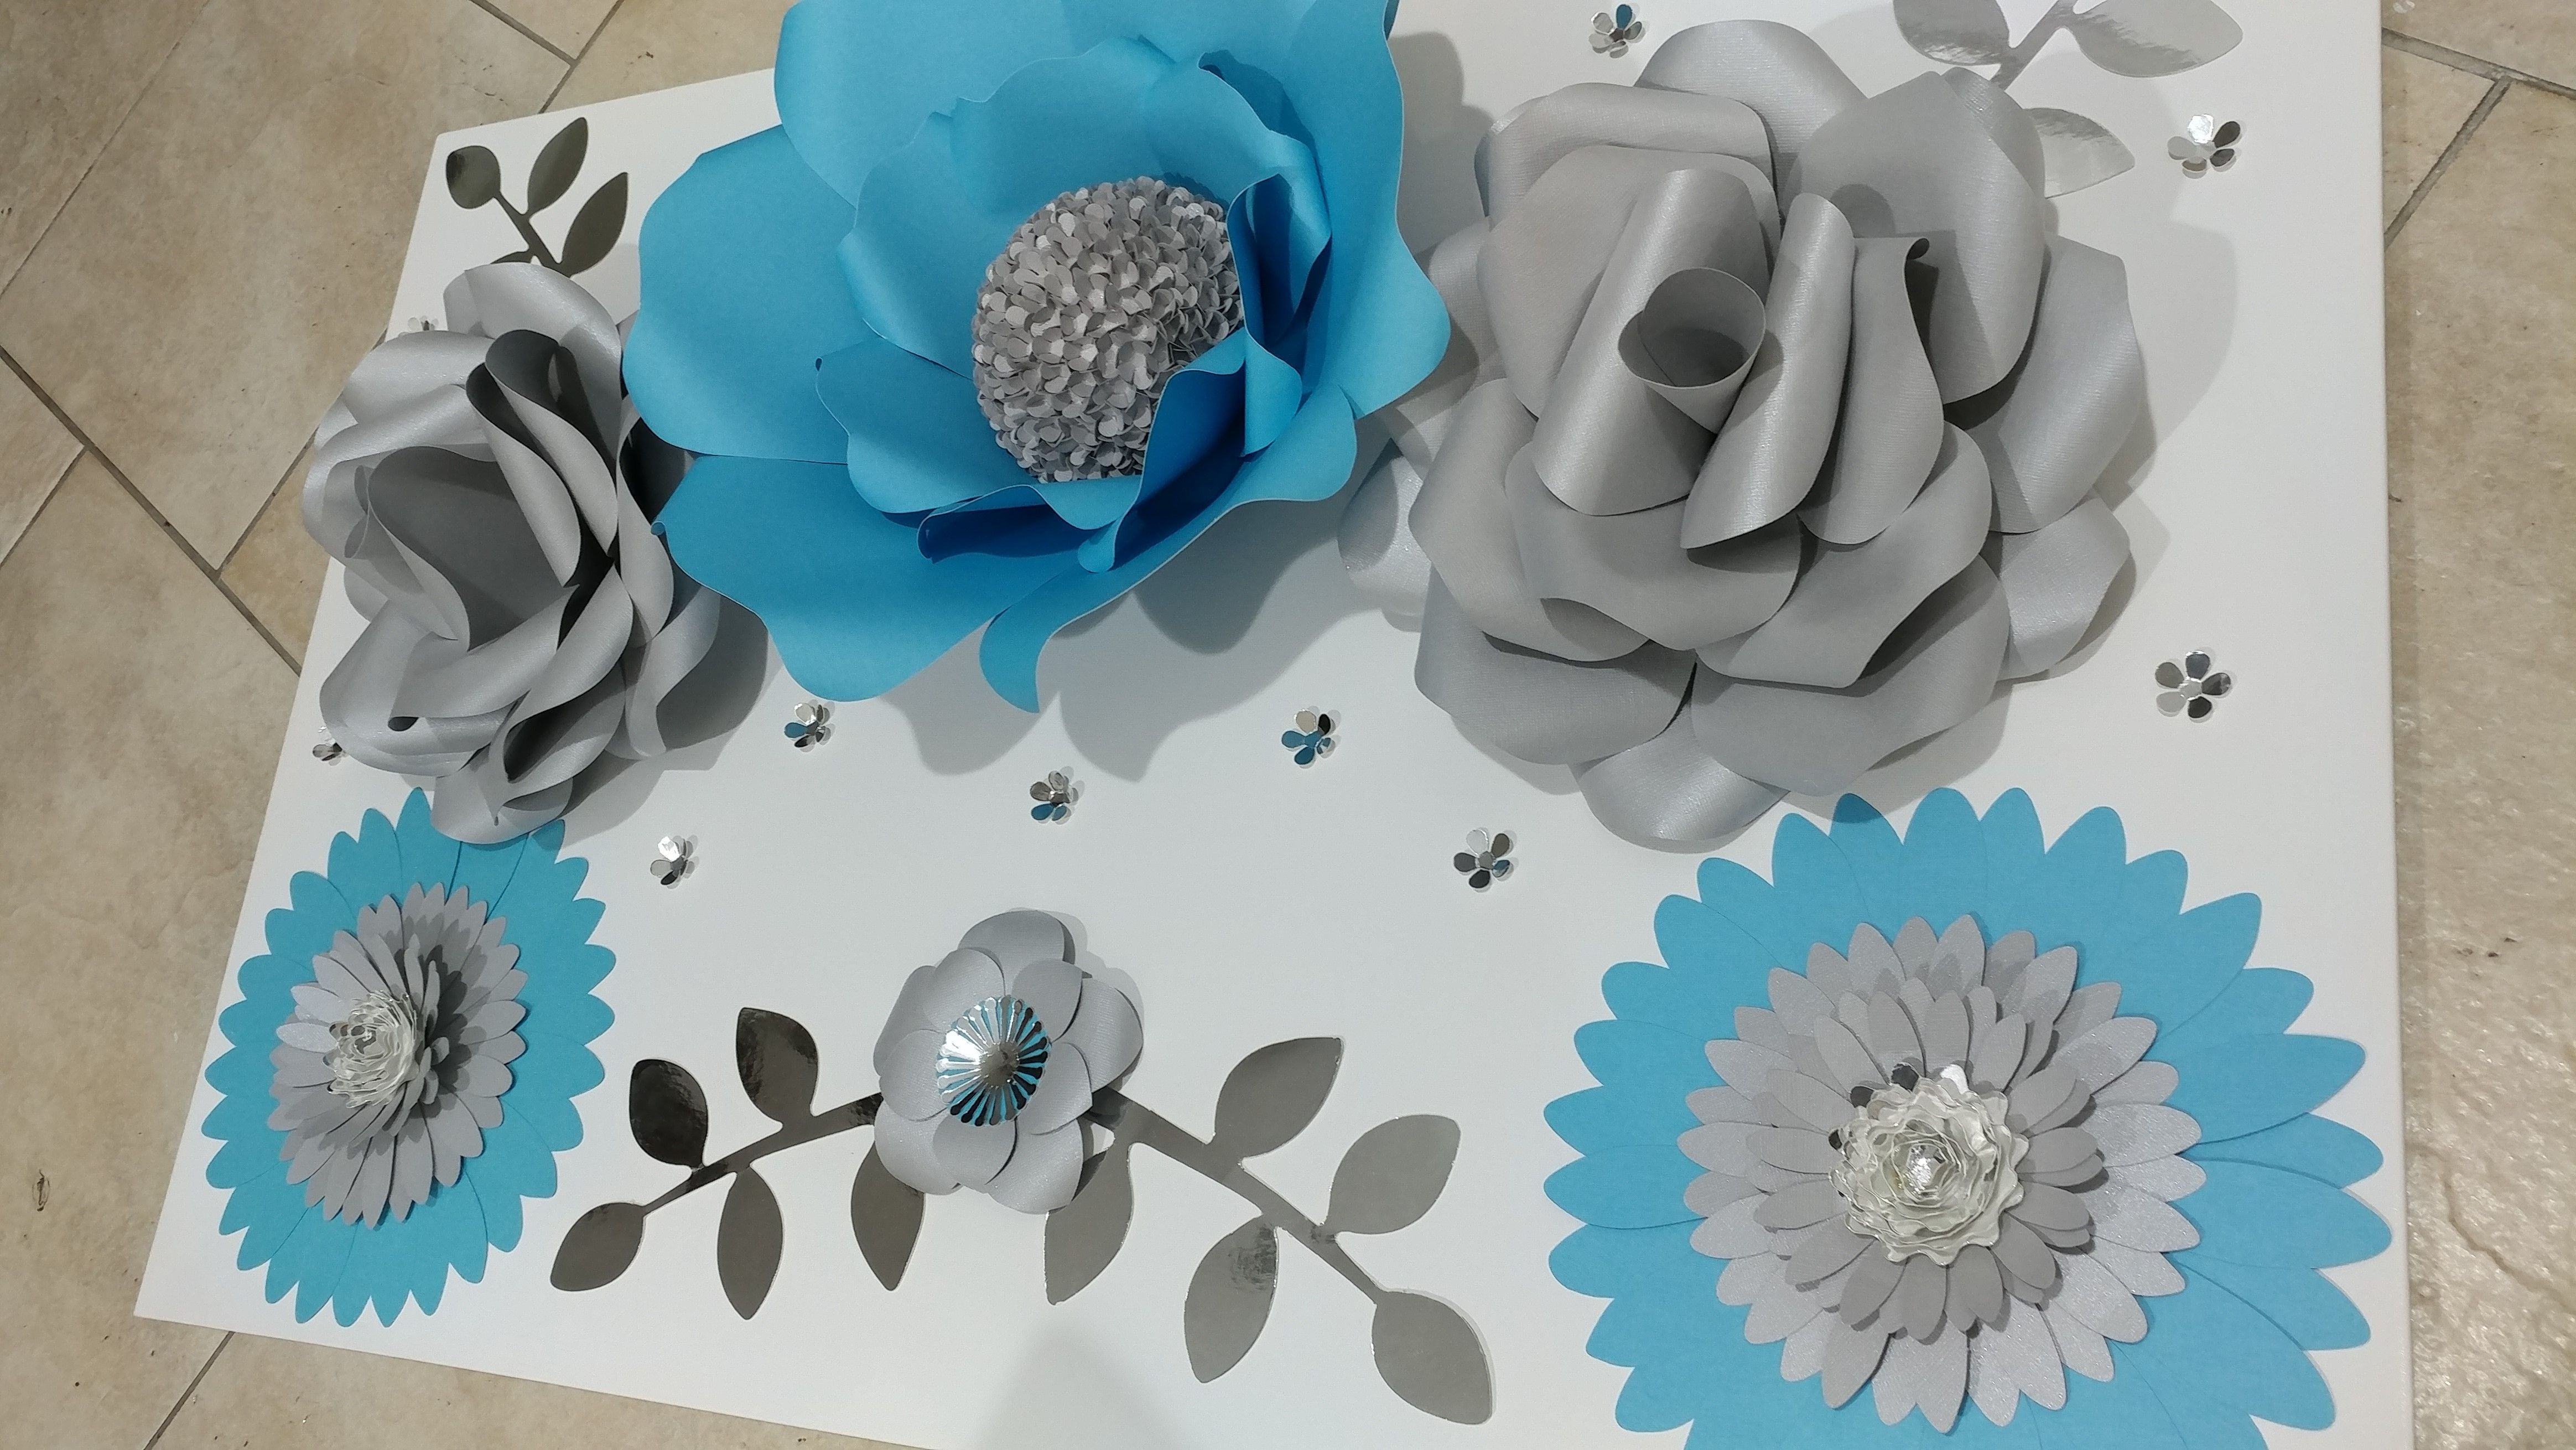 Blue Gray And Silver Paper Flowers On Canvas For Home Or